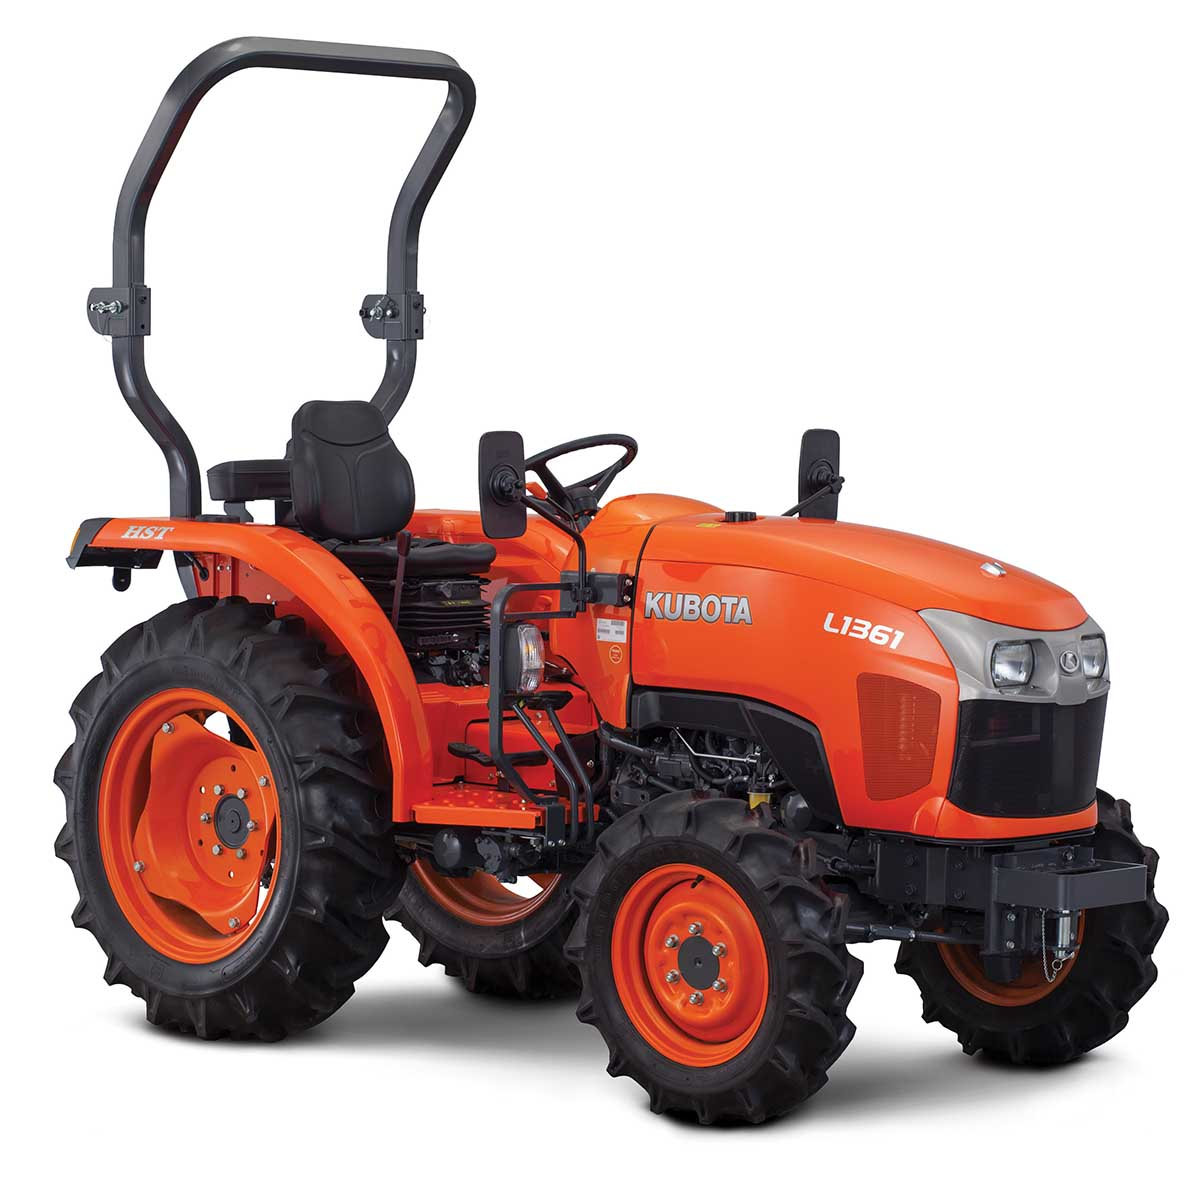 Tractor news: Kubota launches HST and manual machines - NEWS - Farmers  Guardian